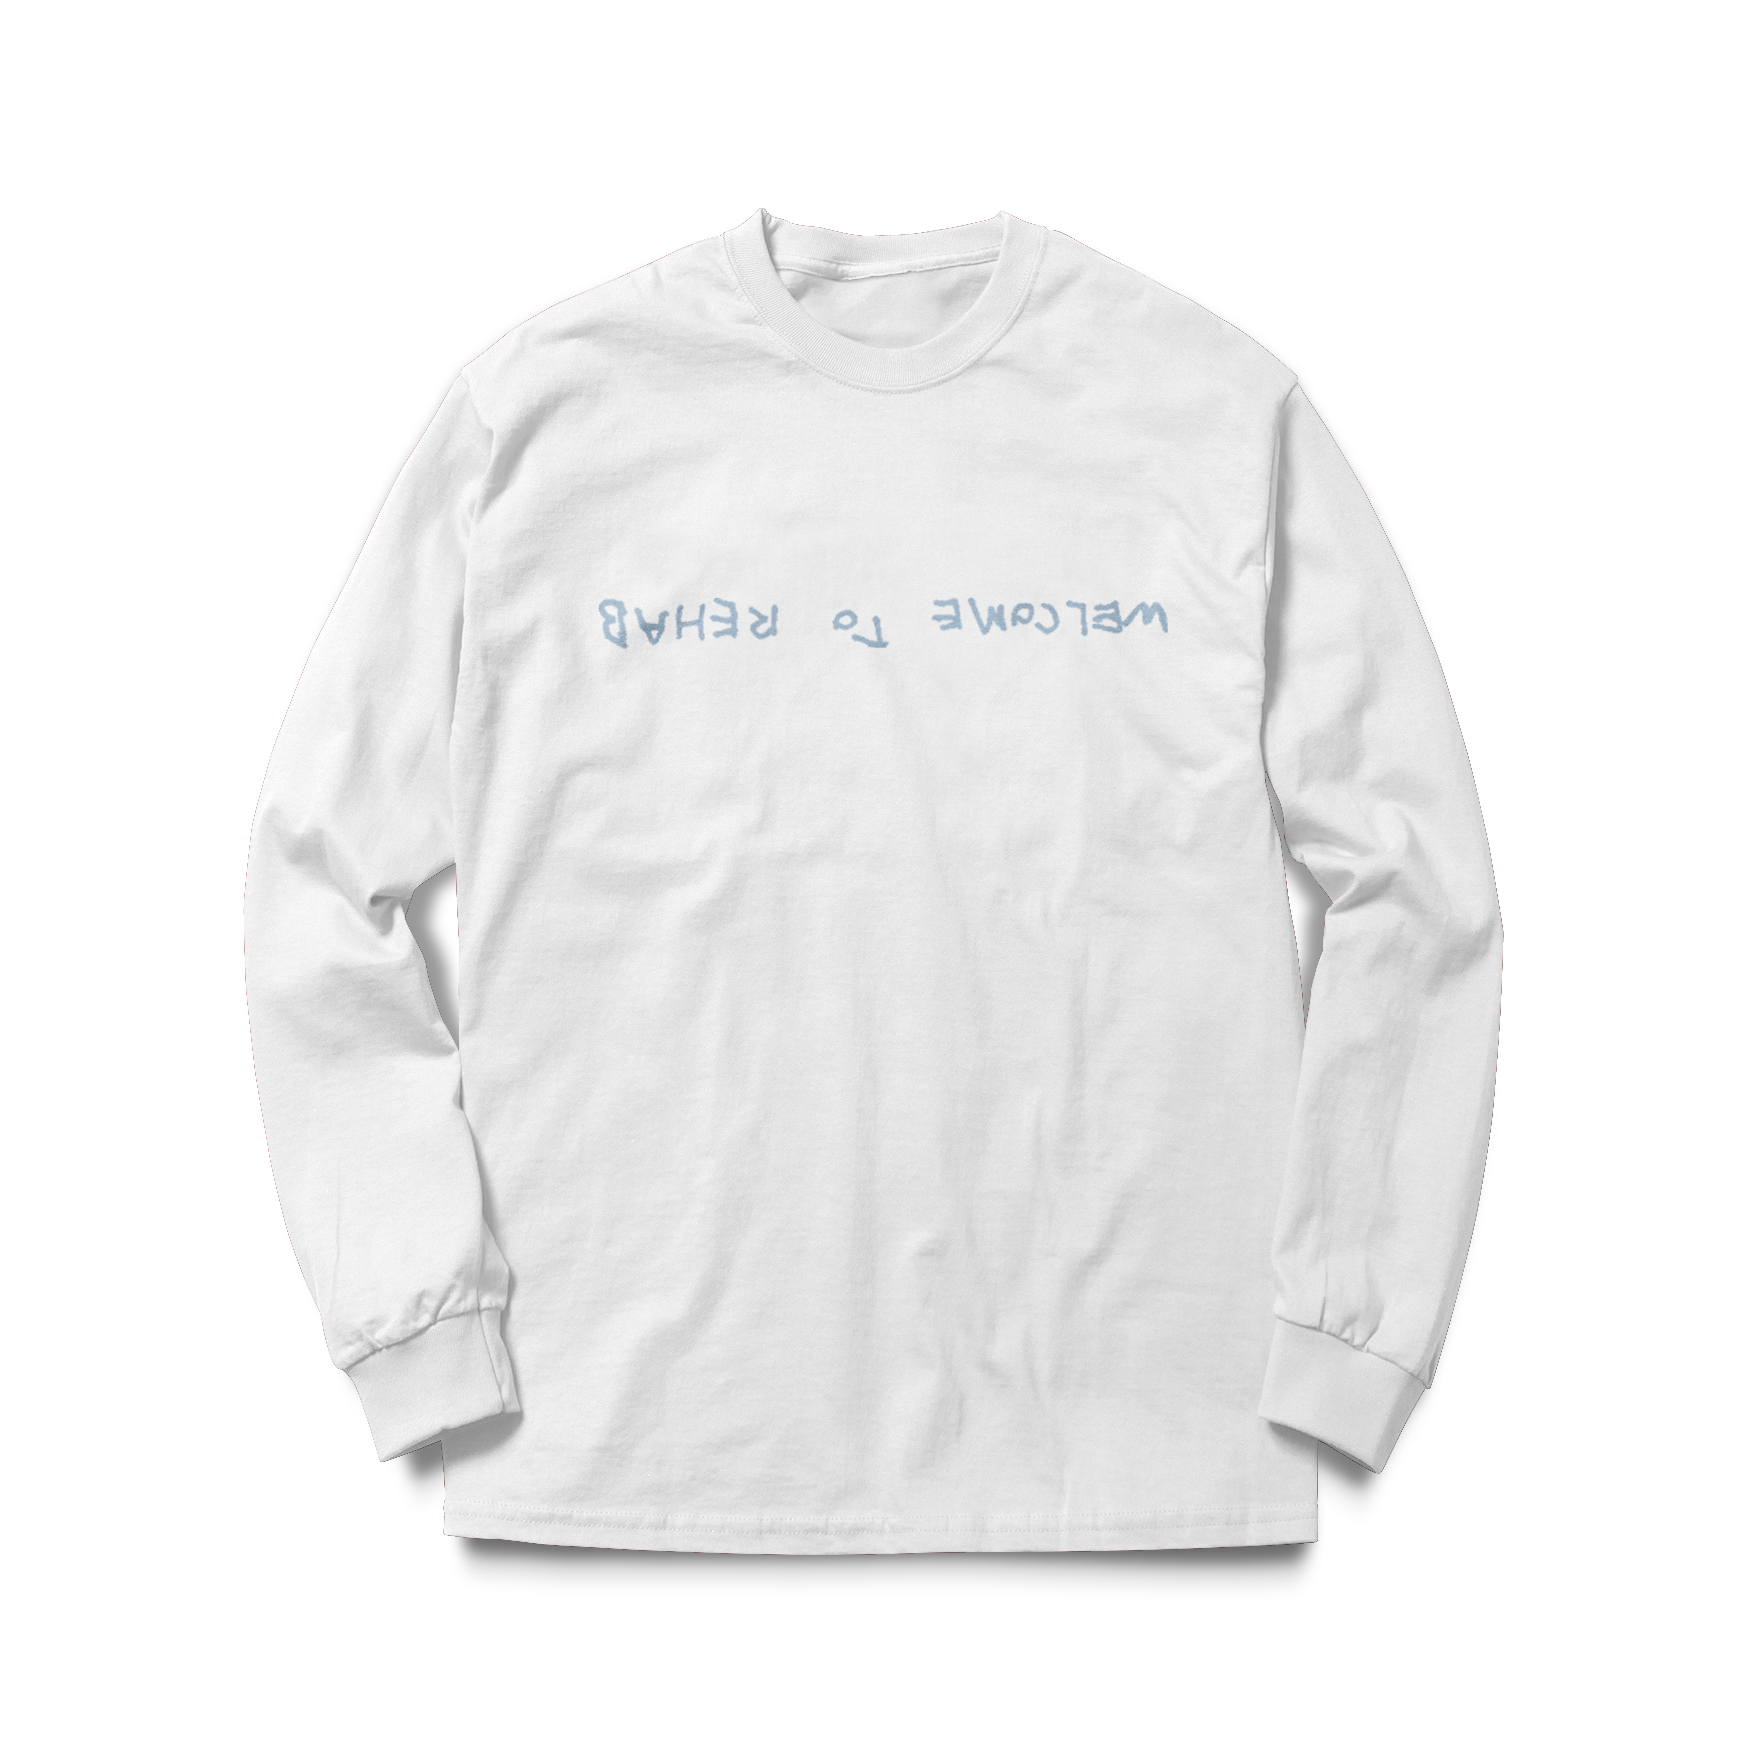 Rehab White Long Sleeve Tee